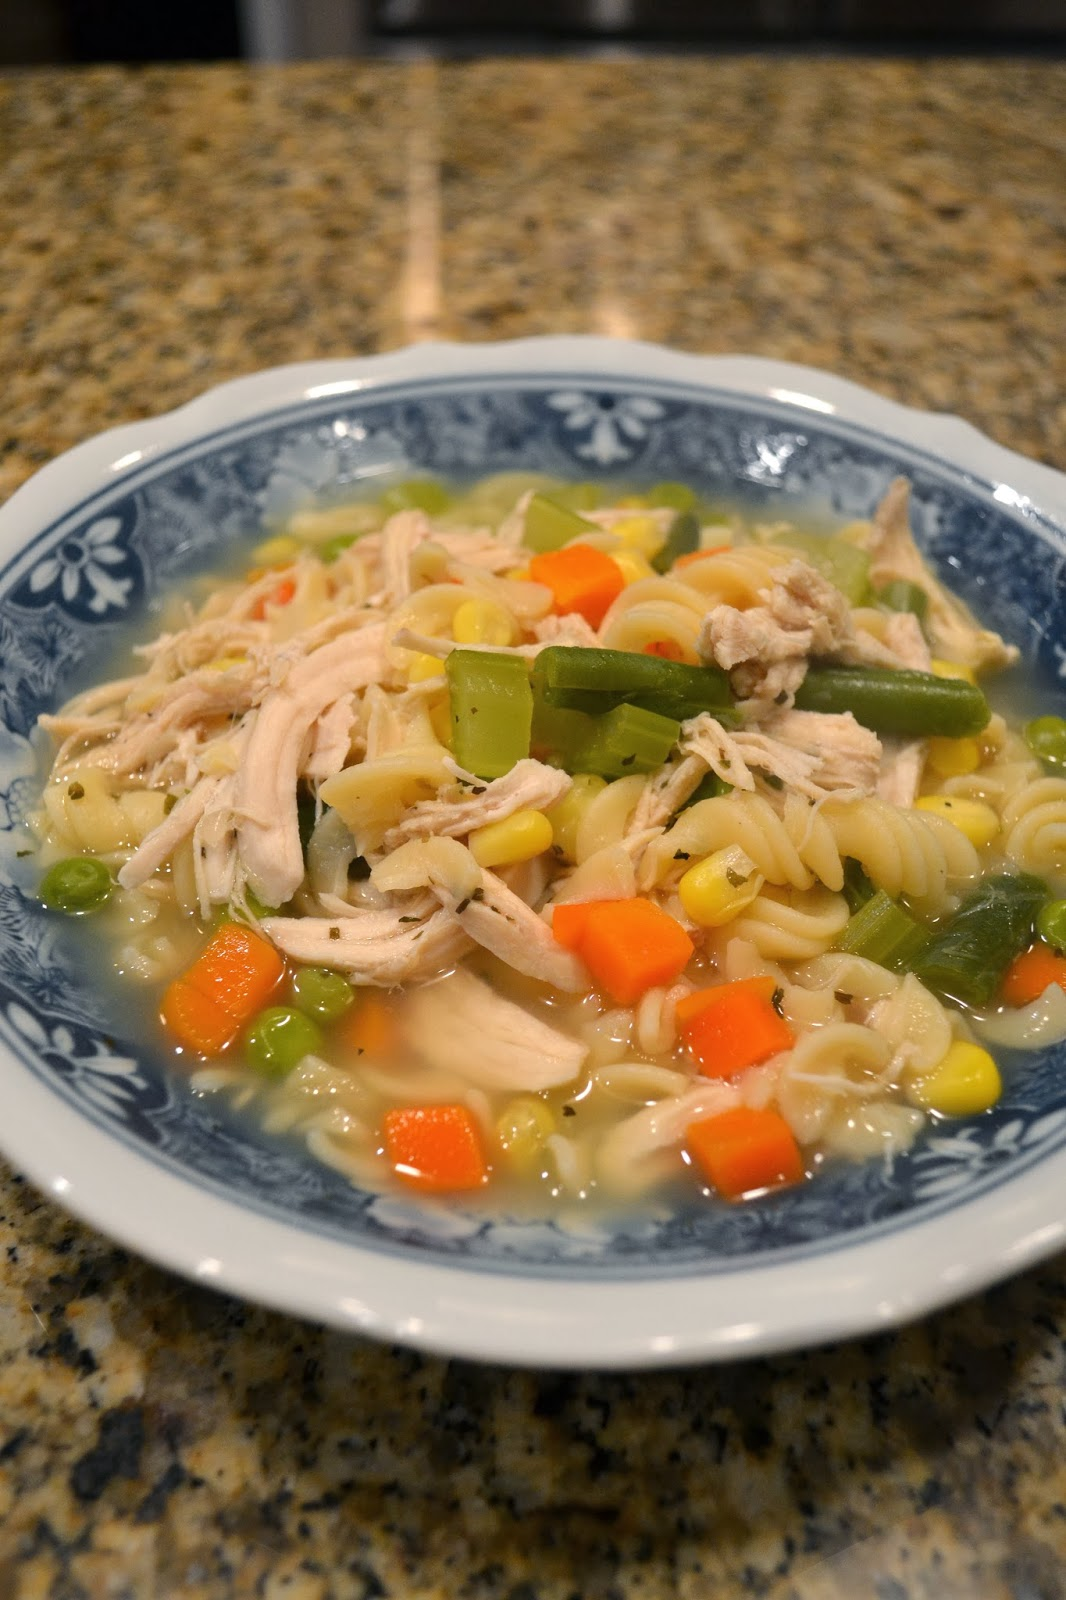 : homemade chicken noodle soup